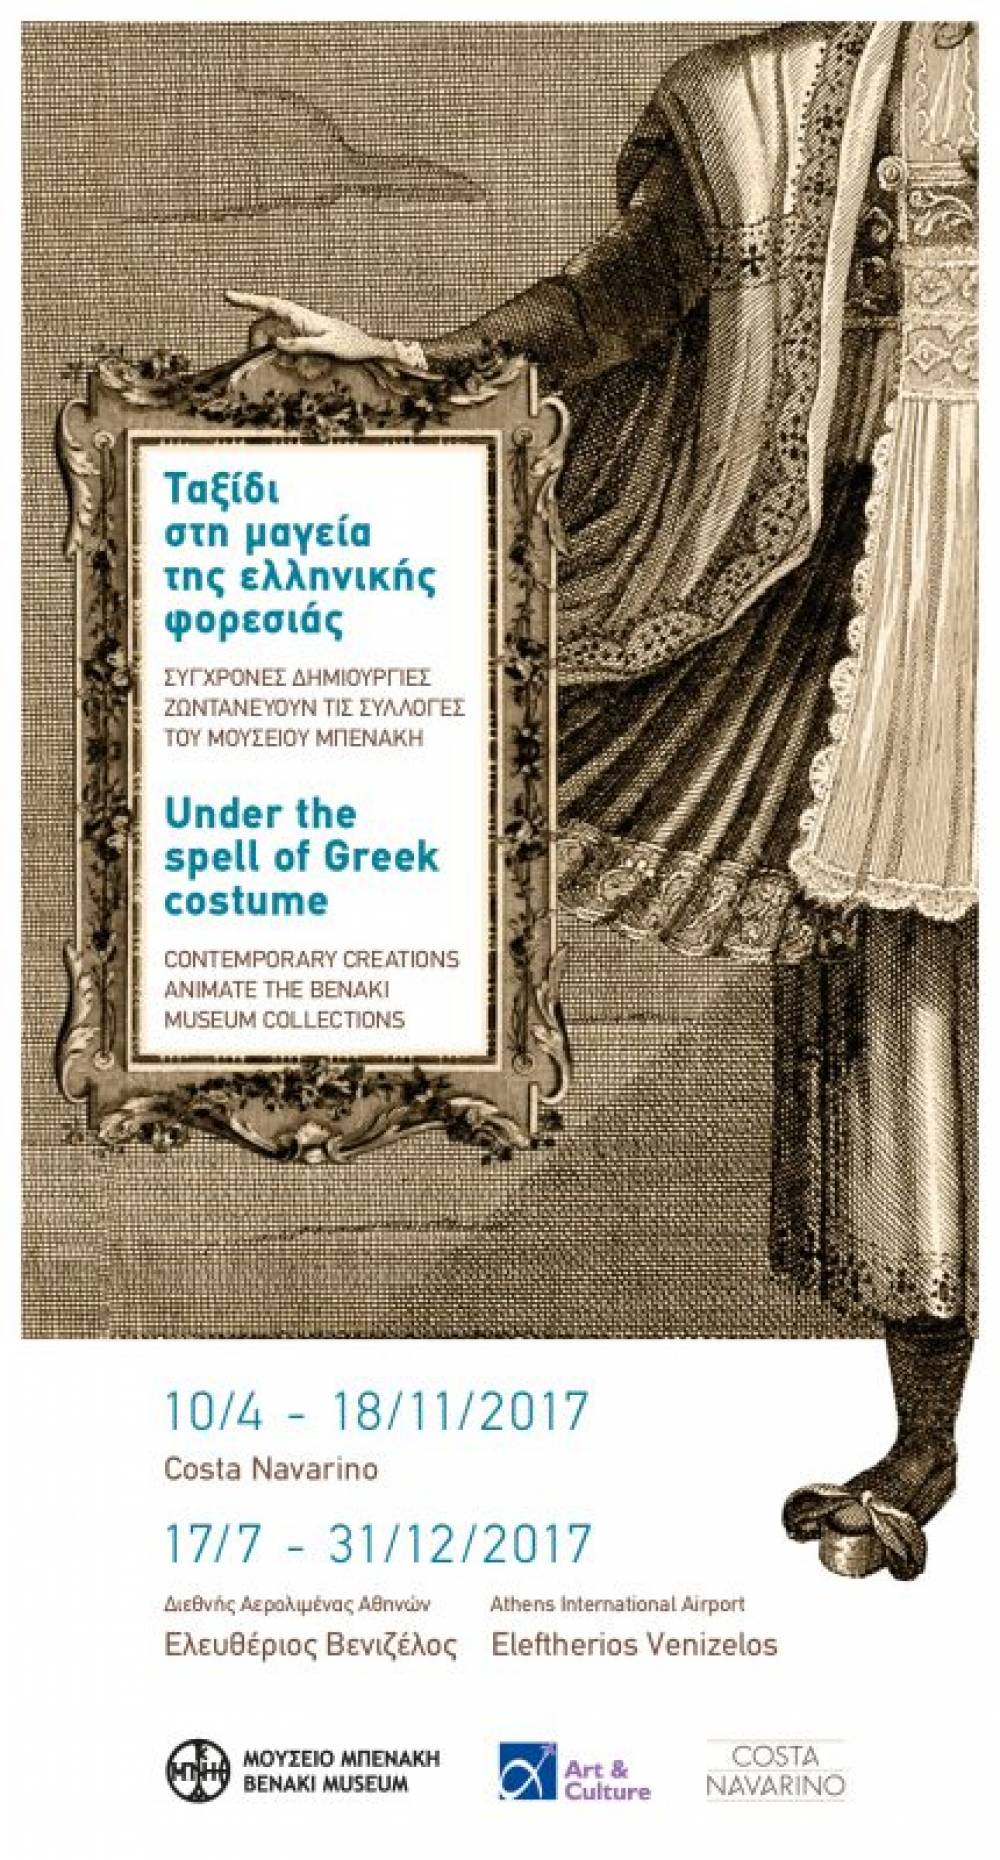 Under the spell of Greek costume